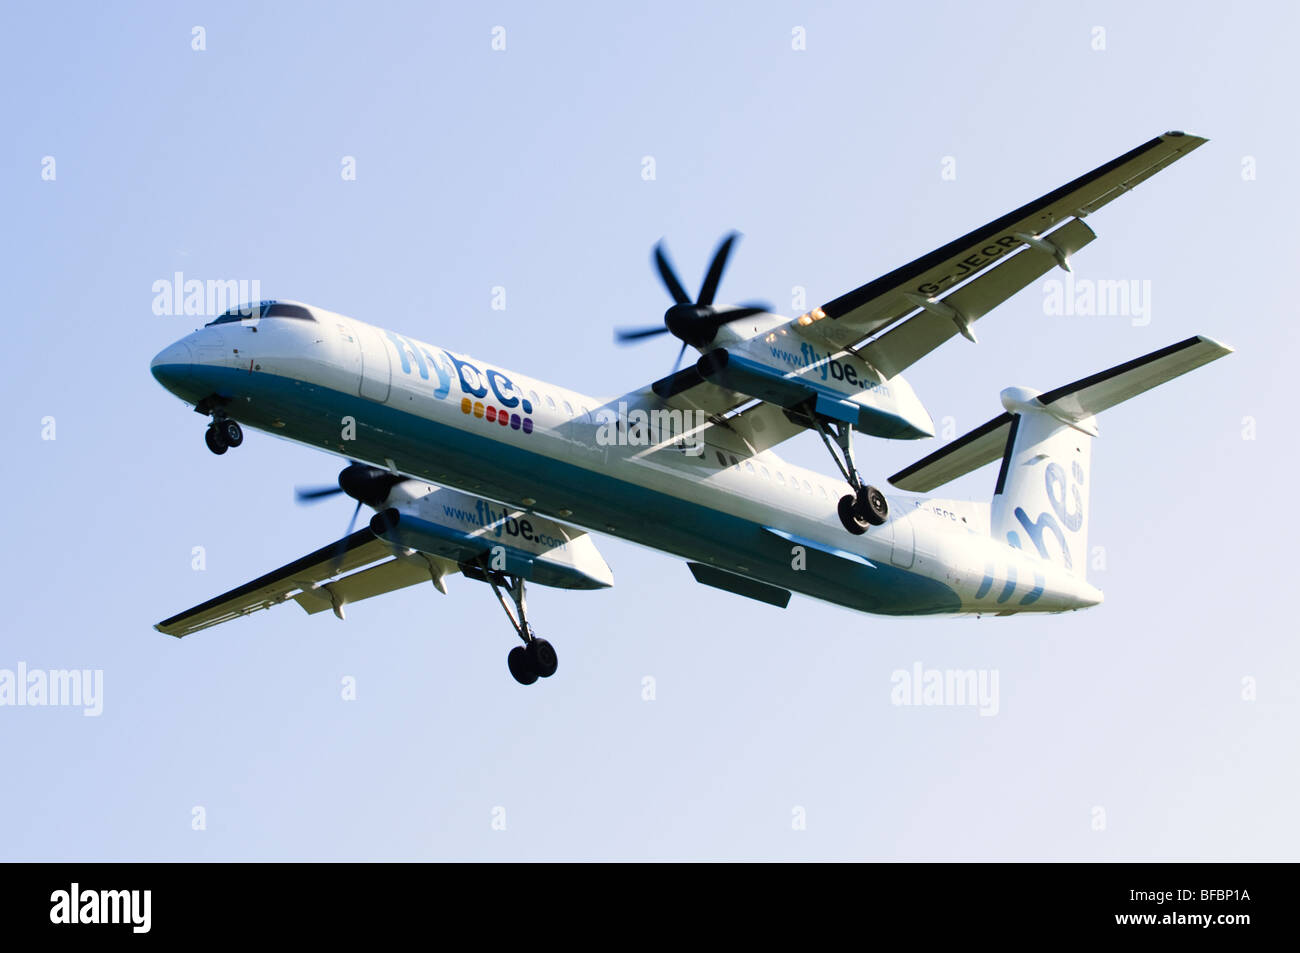 Bombardier Dash 8 operated by Flybe on approach for landing at Birmingham Airport - Stock Image